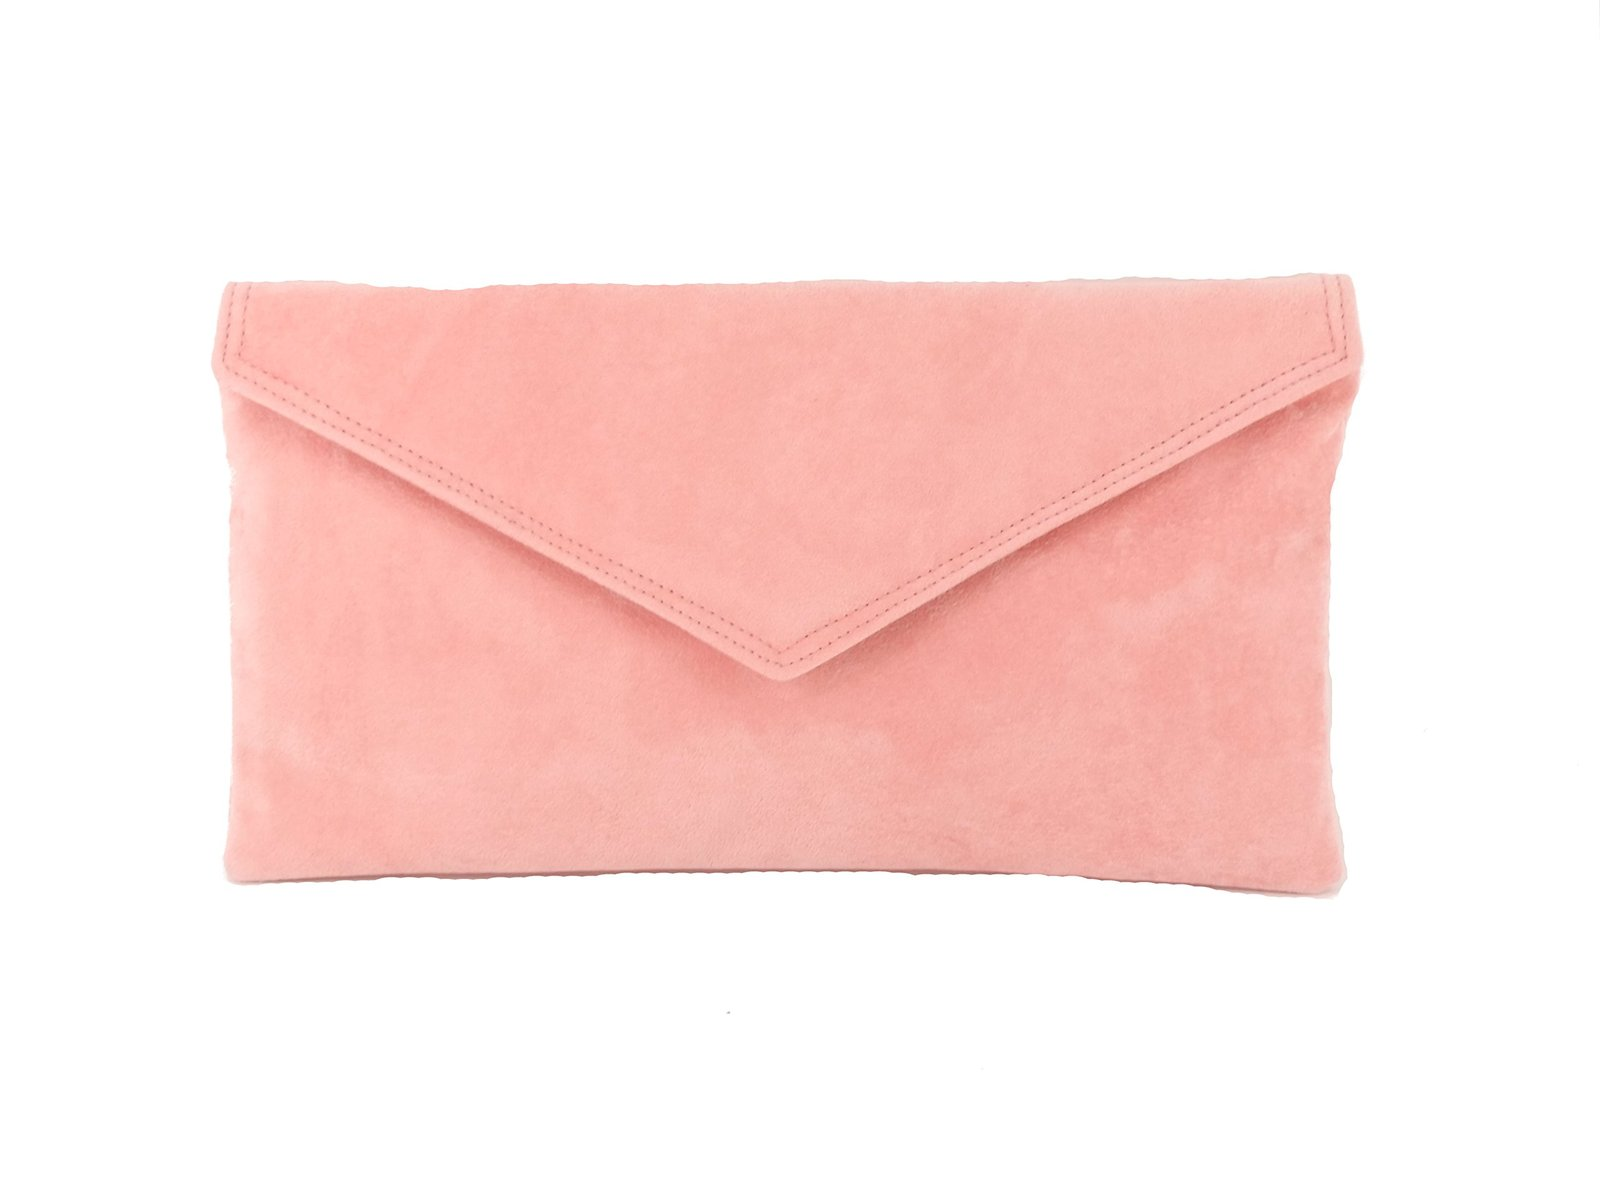 Loni Womens Neat Envelope Faux Suede Clutch Bag/Shoulder Bag In Salmon Pink